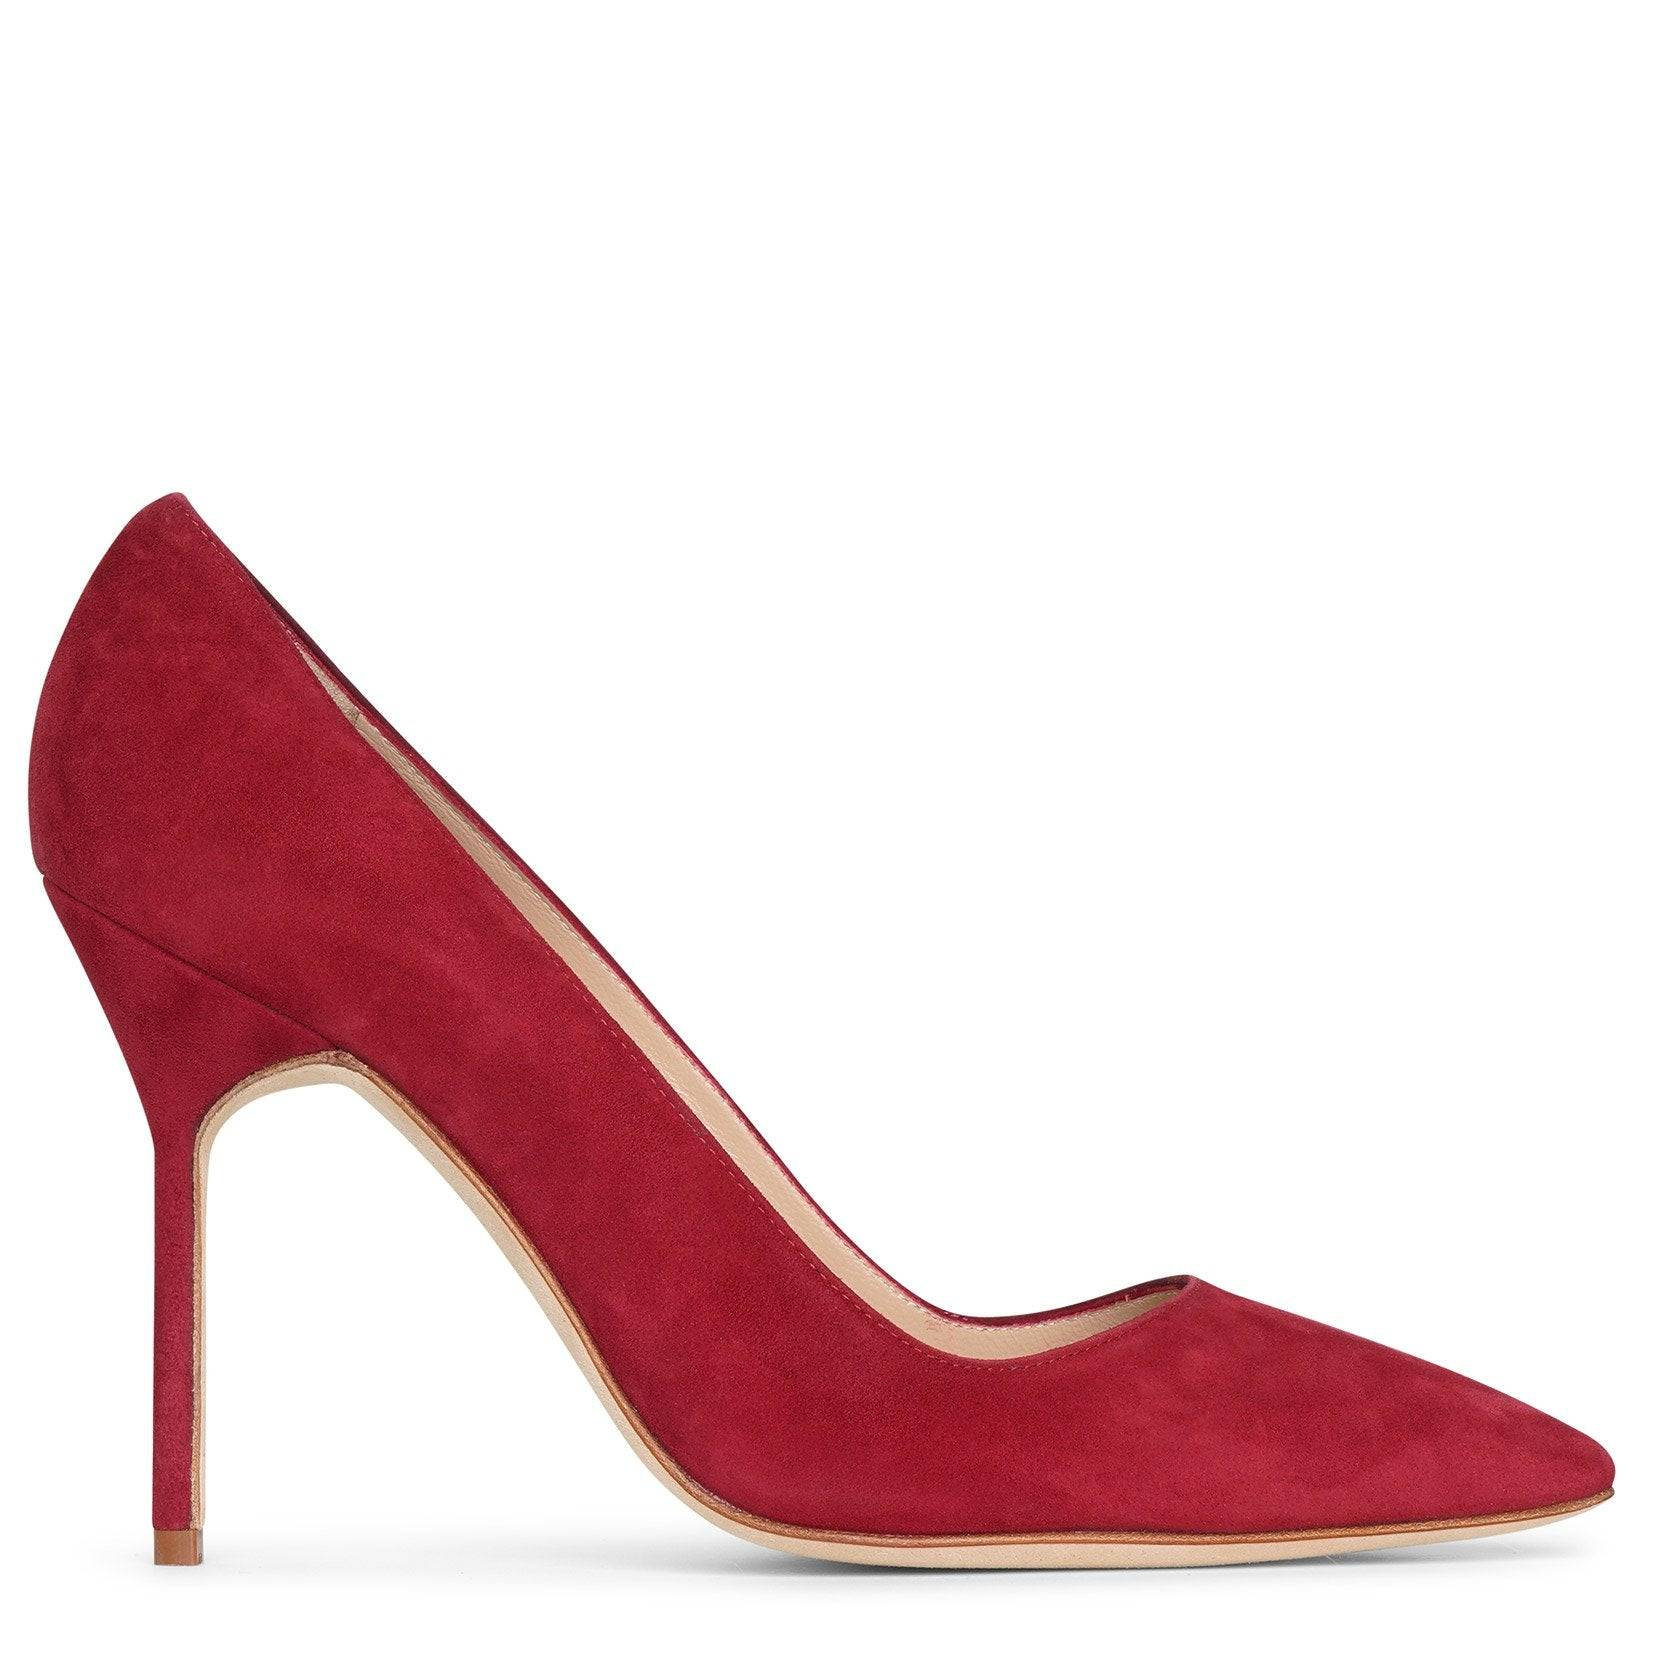 Manolo Blahnik BB 105 deep red suede pumps  - red - female - Size: 40